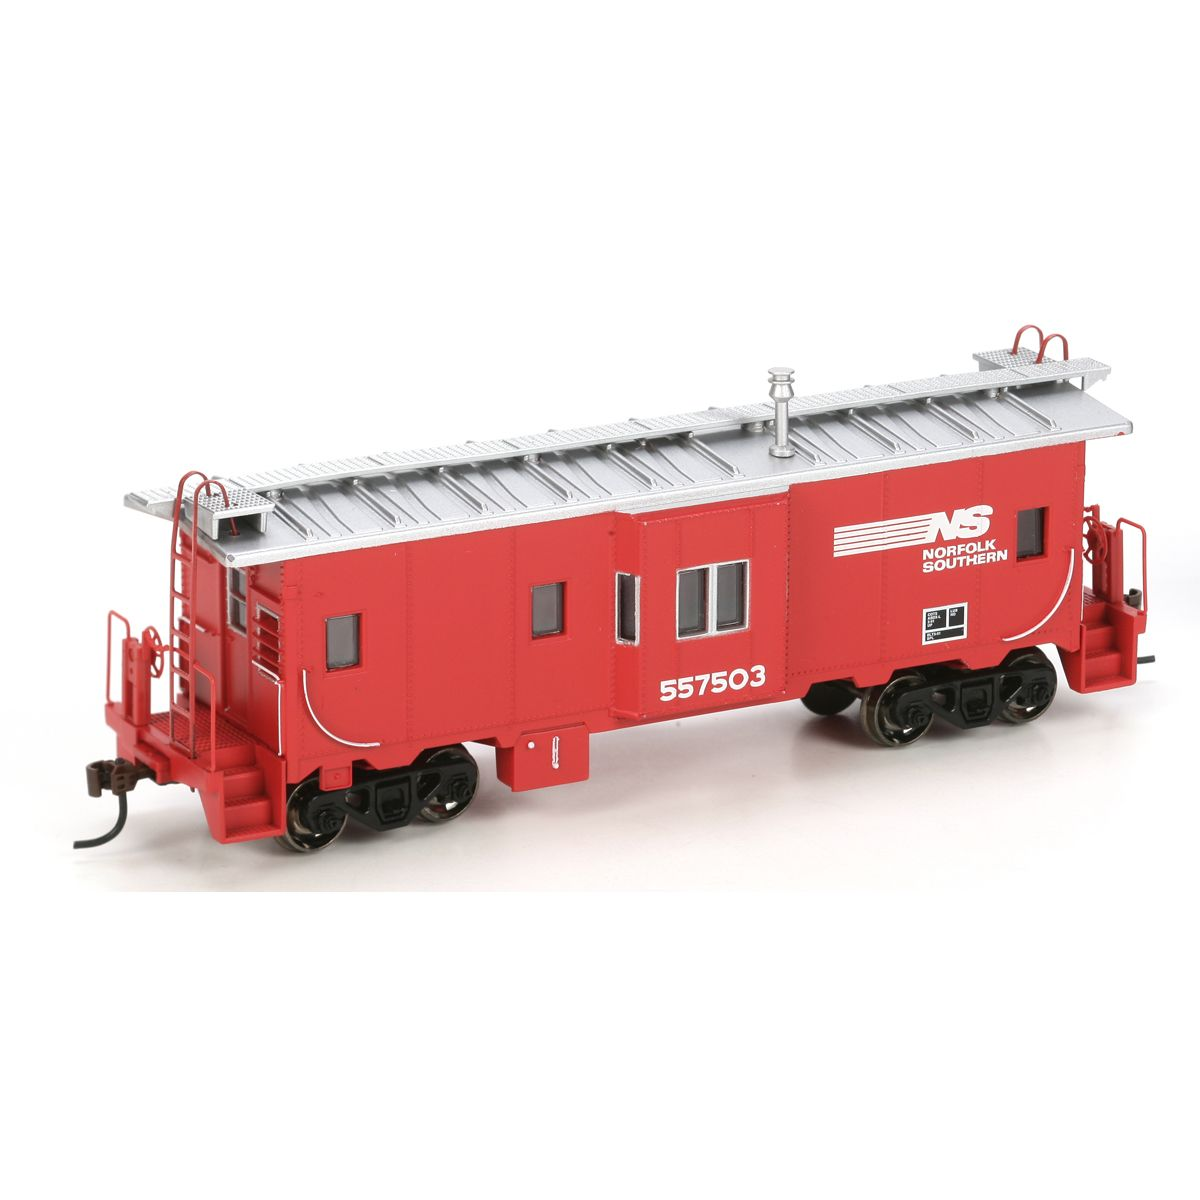 HO RTR Bay Window Caboose, NS/Red #557503 (ATH7464